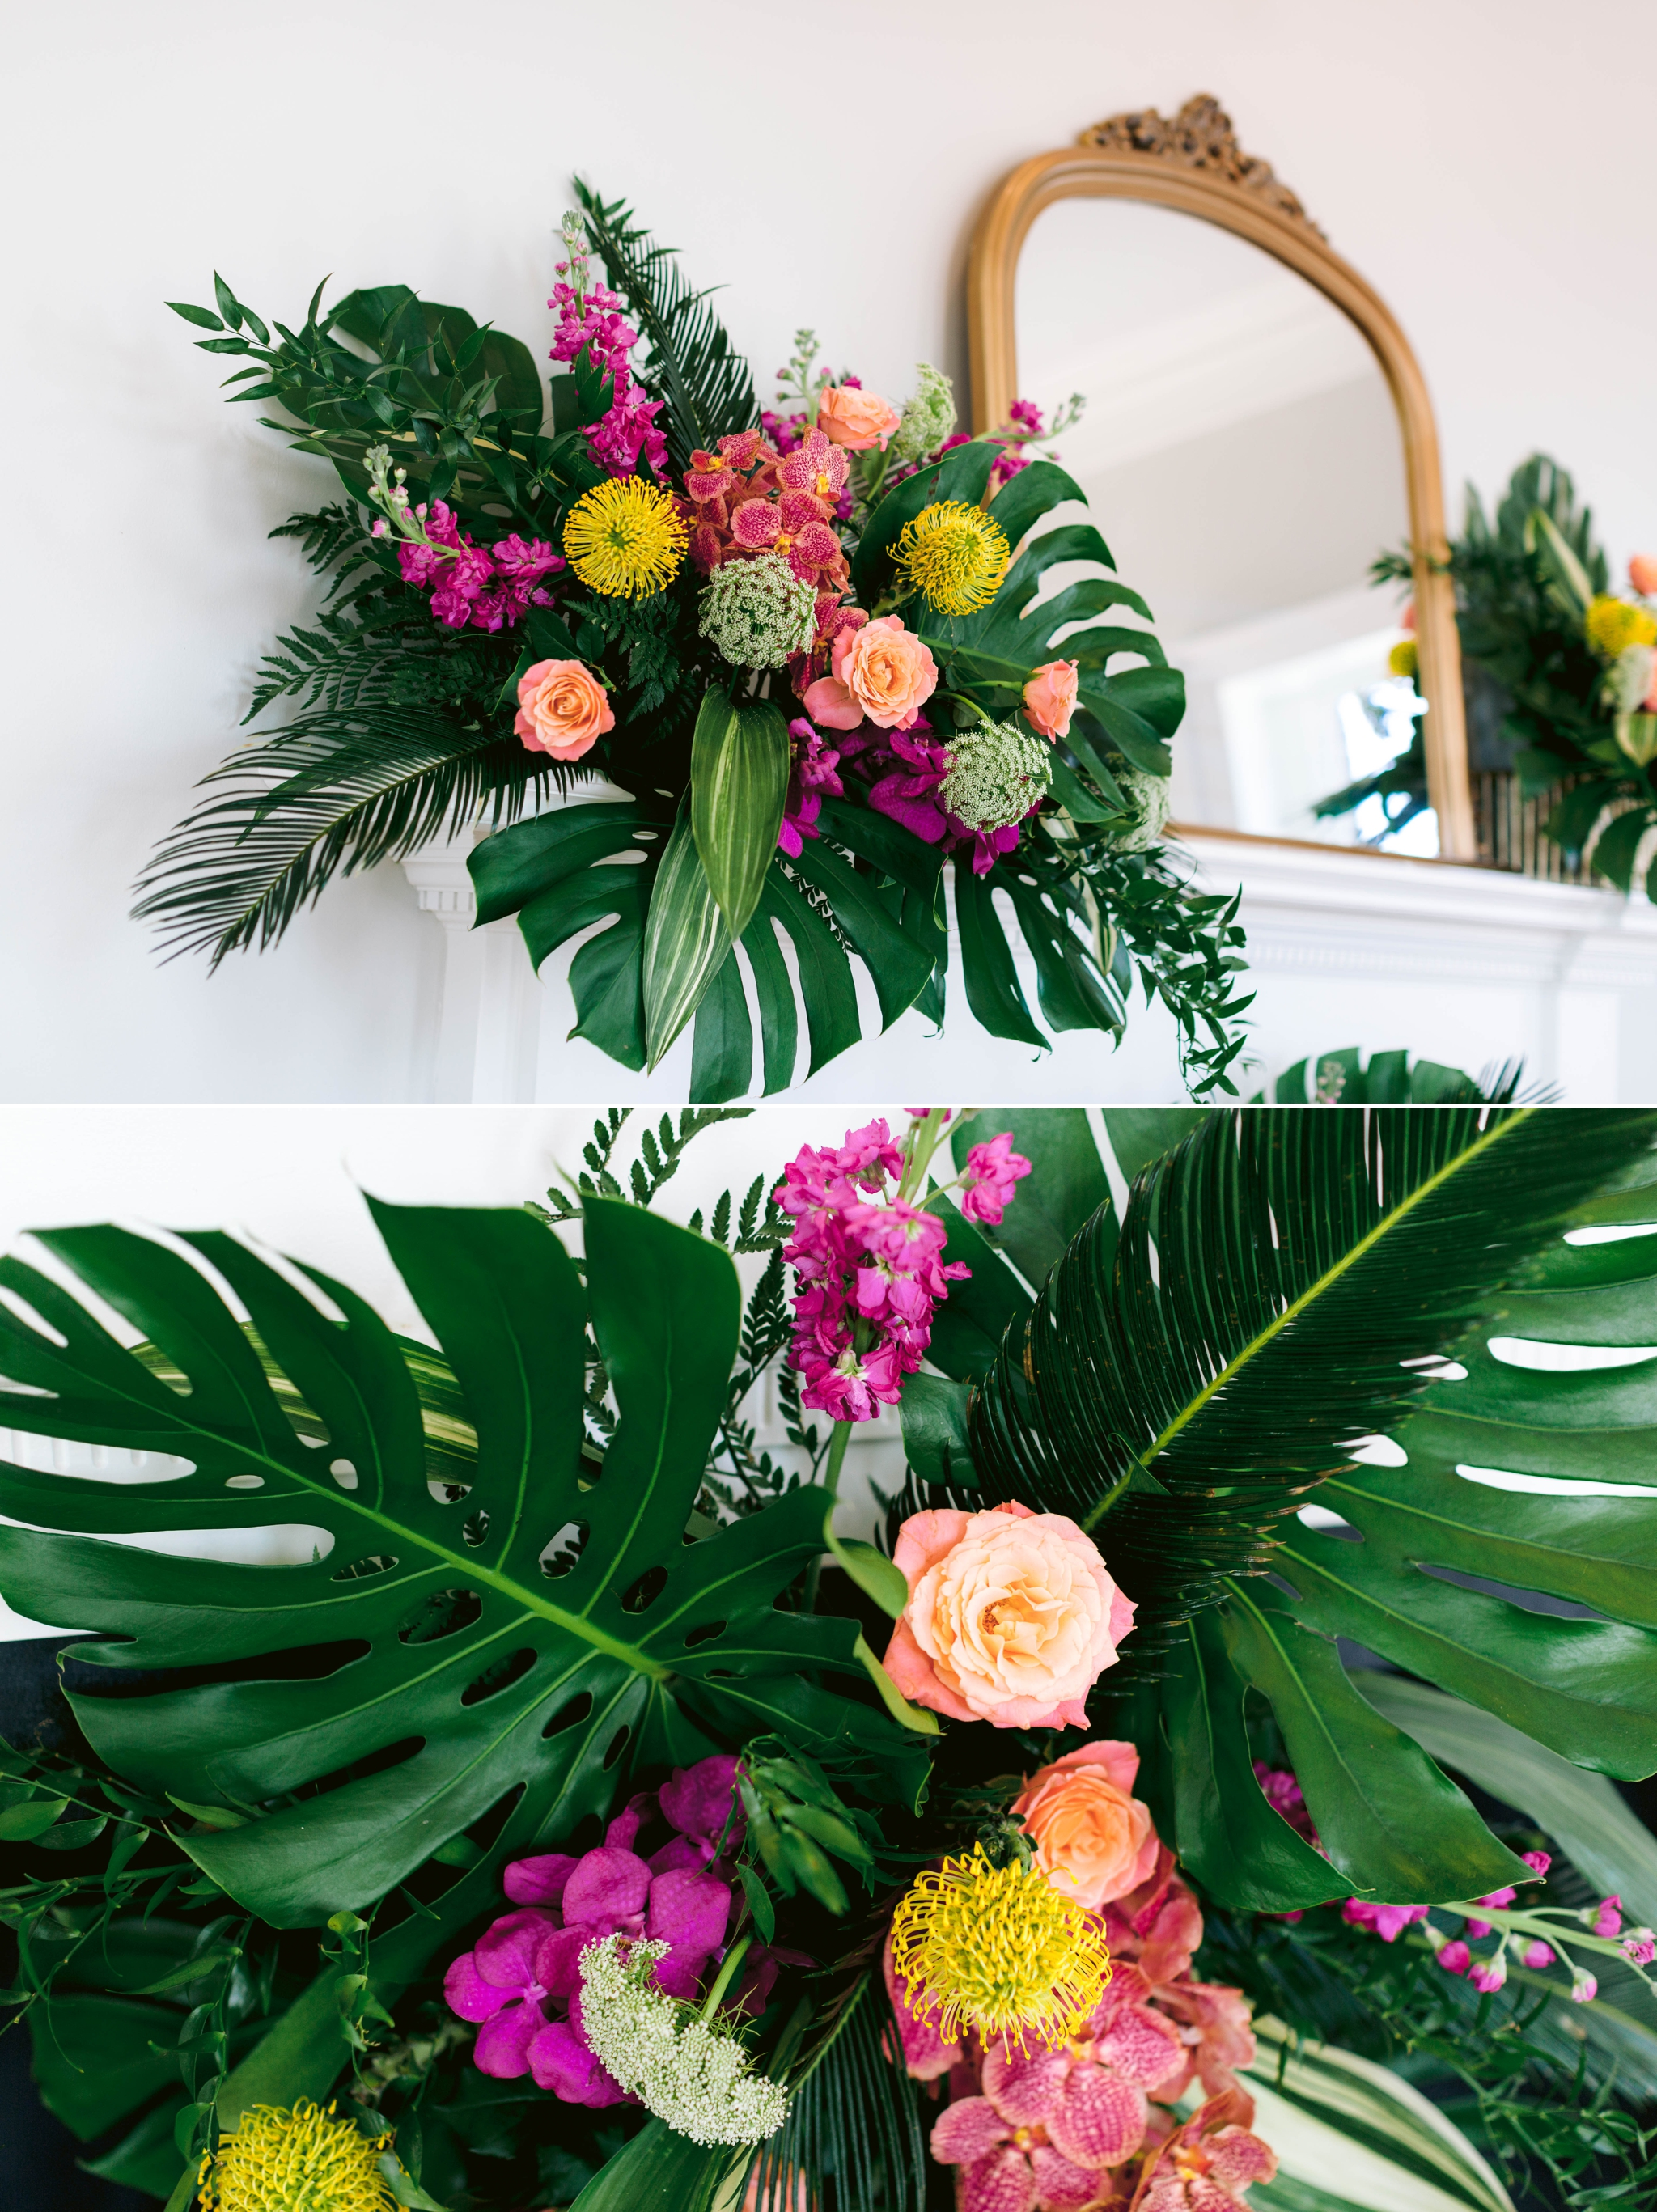 Fireplace decorated with gorgeous Hawaiian tropical florals - Table Setting with a gorgeous colorful flower arrangement, blush and blue plates with gold flatware and a tropical name card as well as a calligraphy menu - Navy, Green, Gold and Berry colored Tropical Wedding Inspiration for your Wedding in Hawaii! - Honolulu, Oahu, Hawaii Photographer